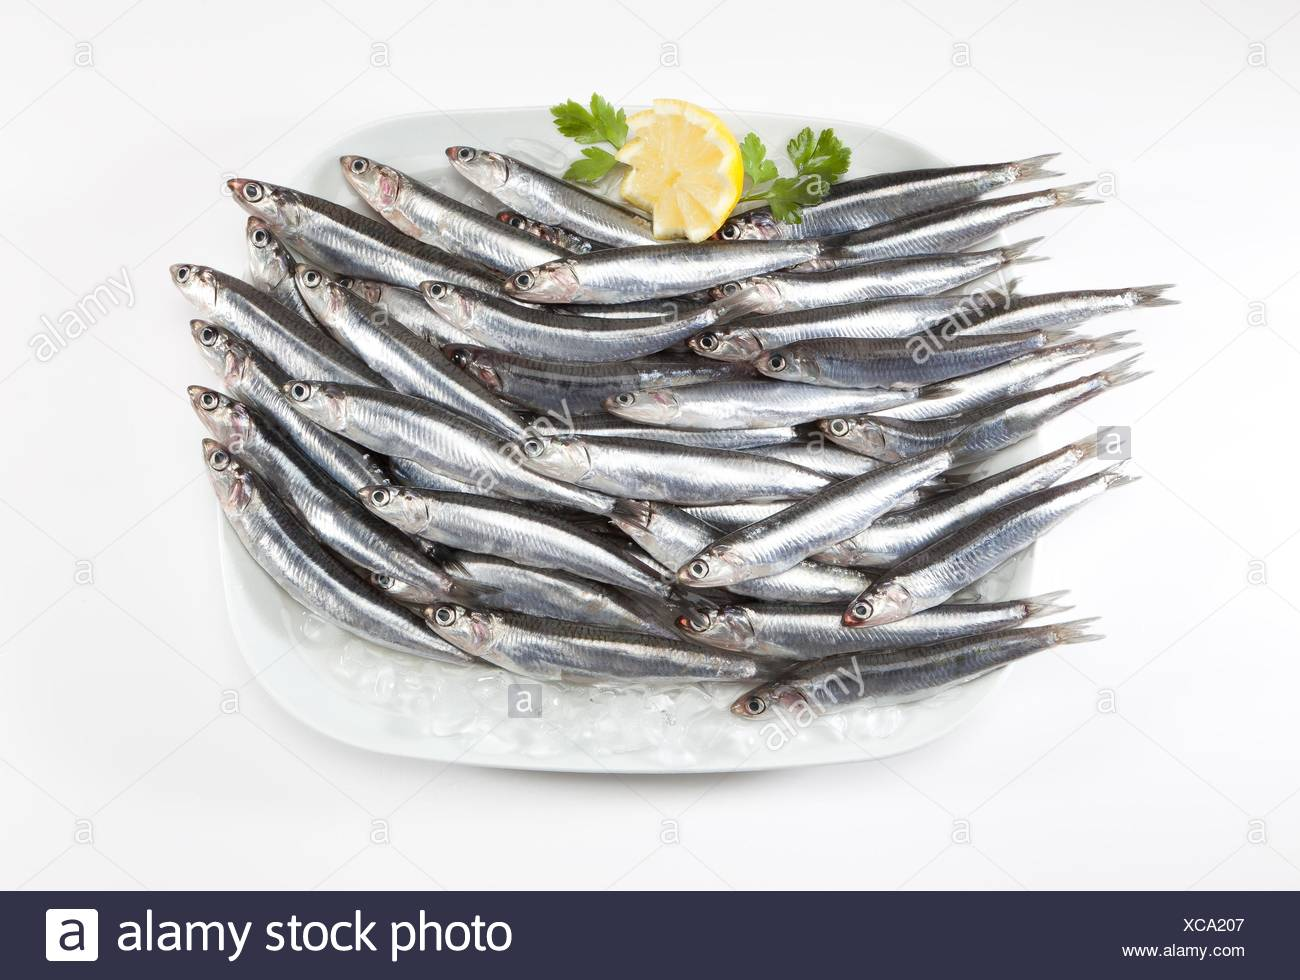 anchovies plate on ice. - Stock Image